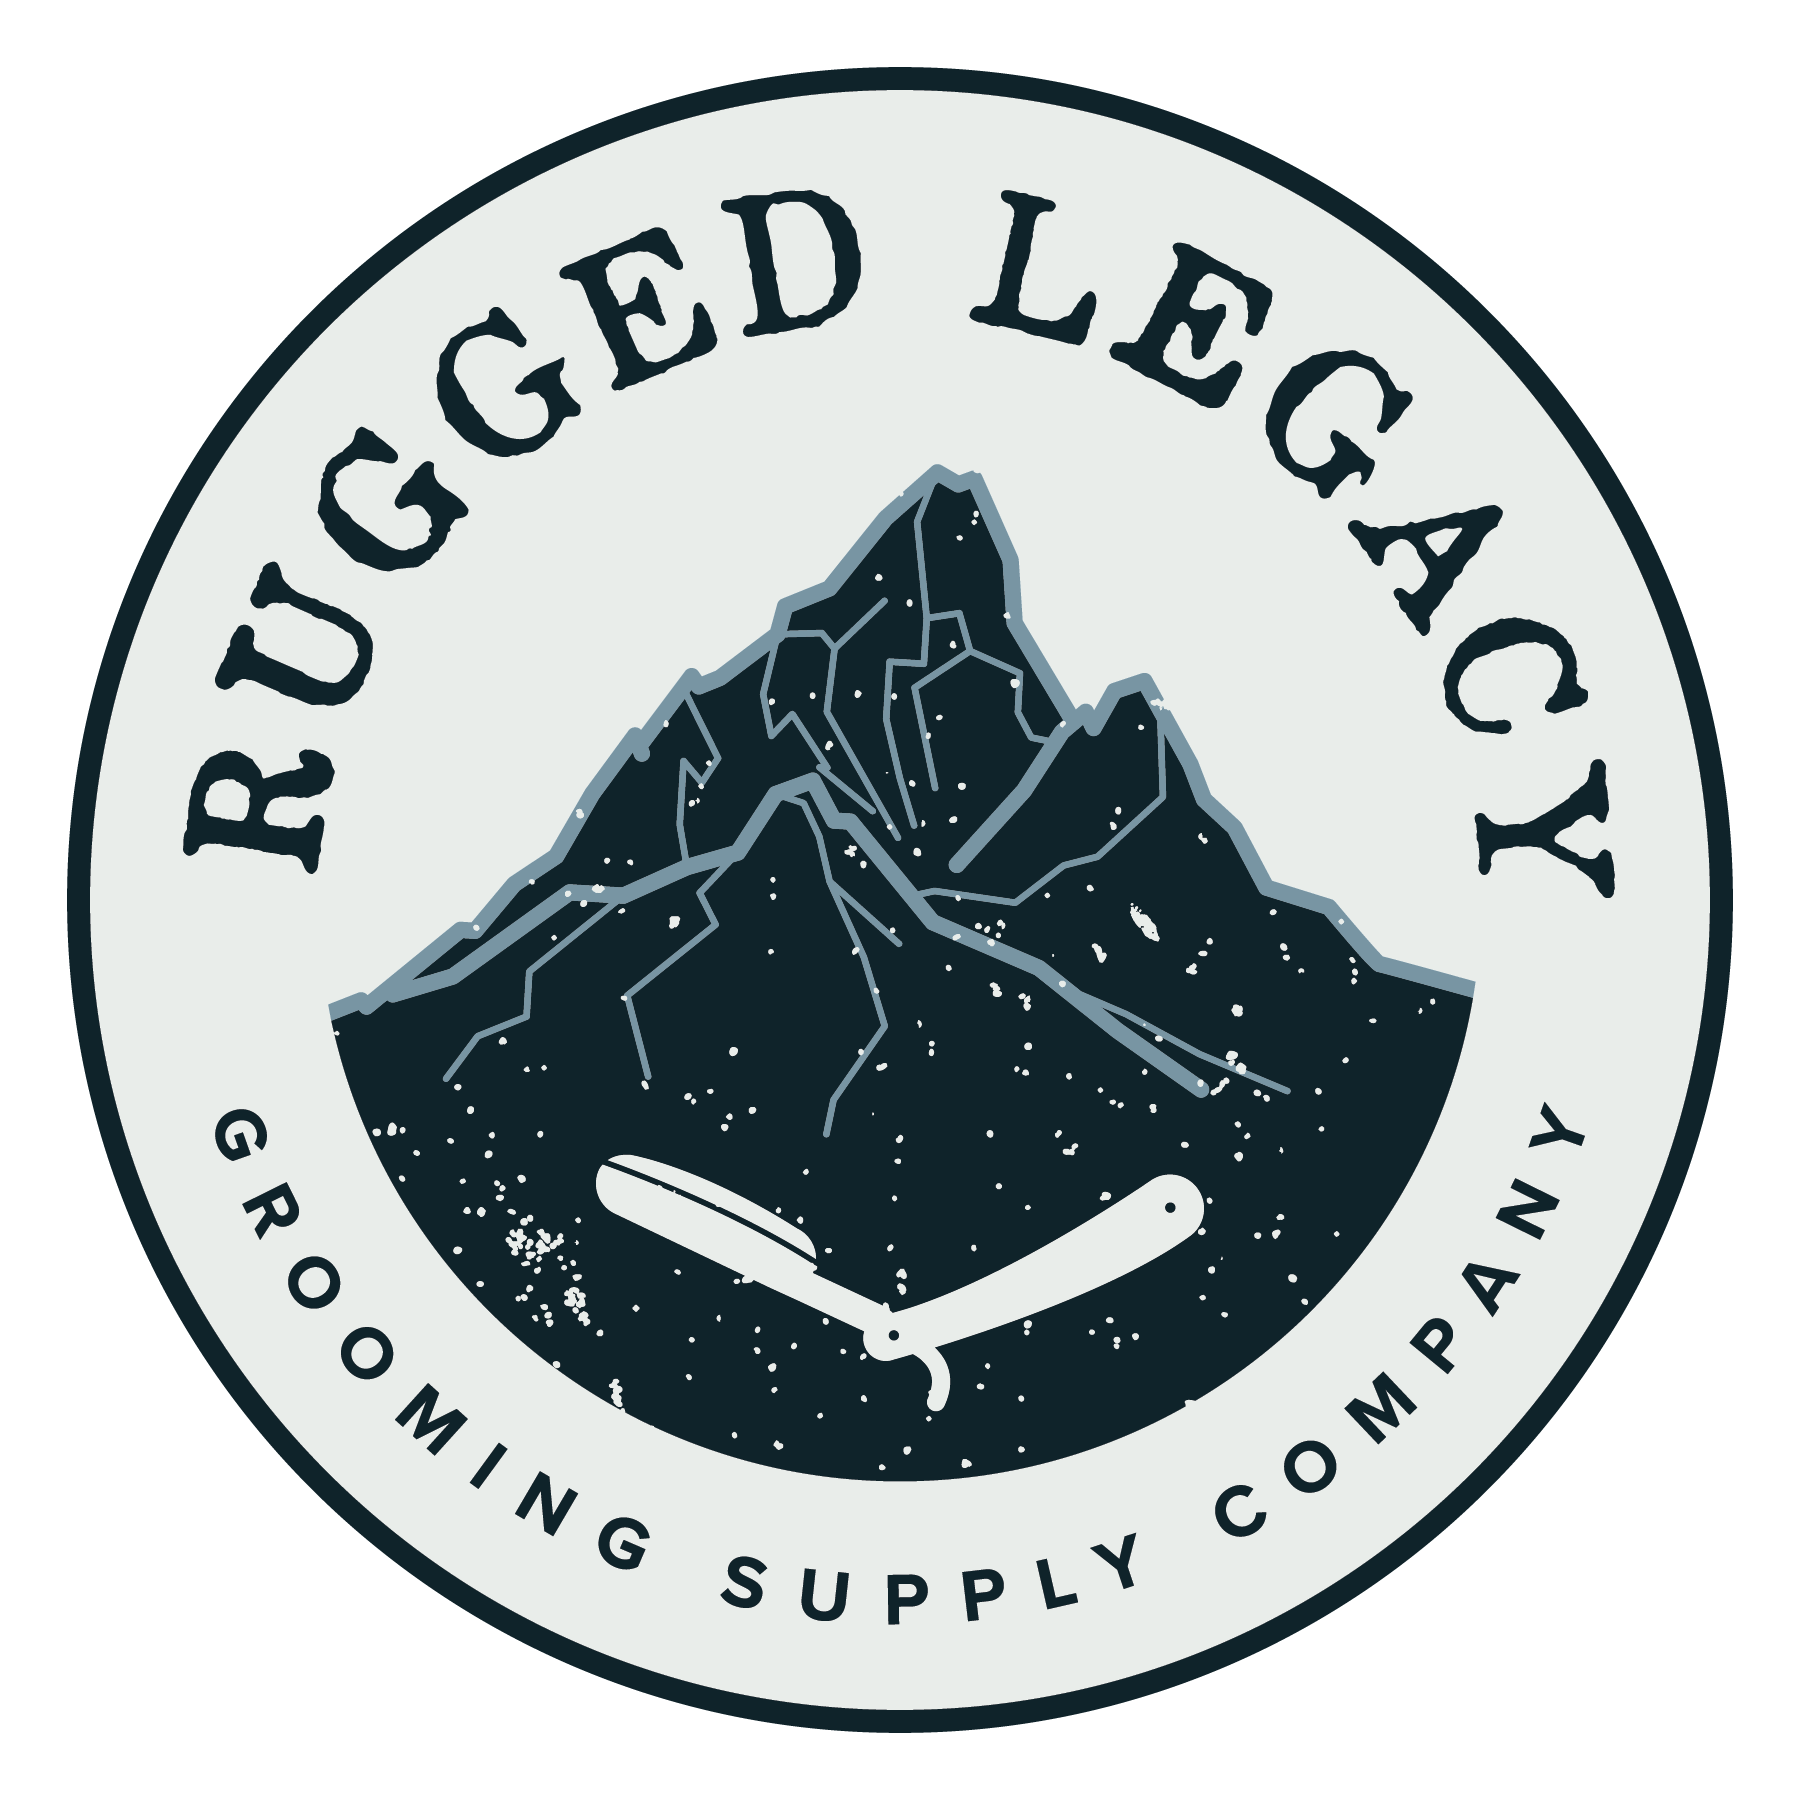 http://brittcreative.co/wp-content/uploads/2019/02/RuggedLegacy_MainLogo_FullColor.png